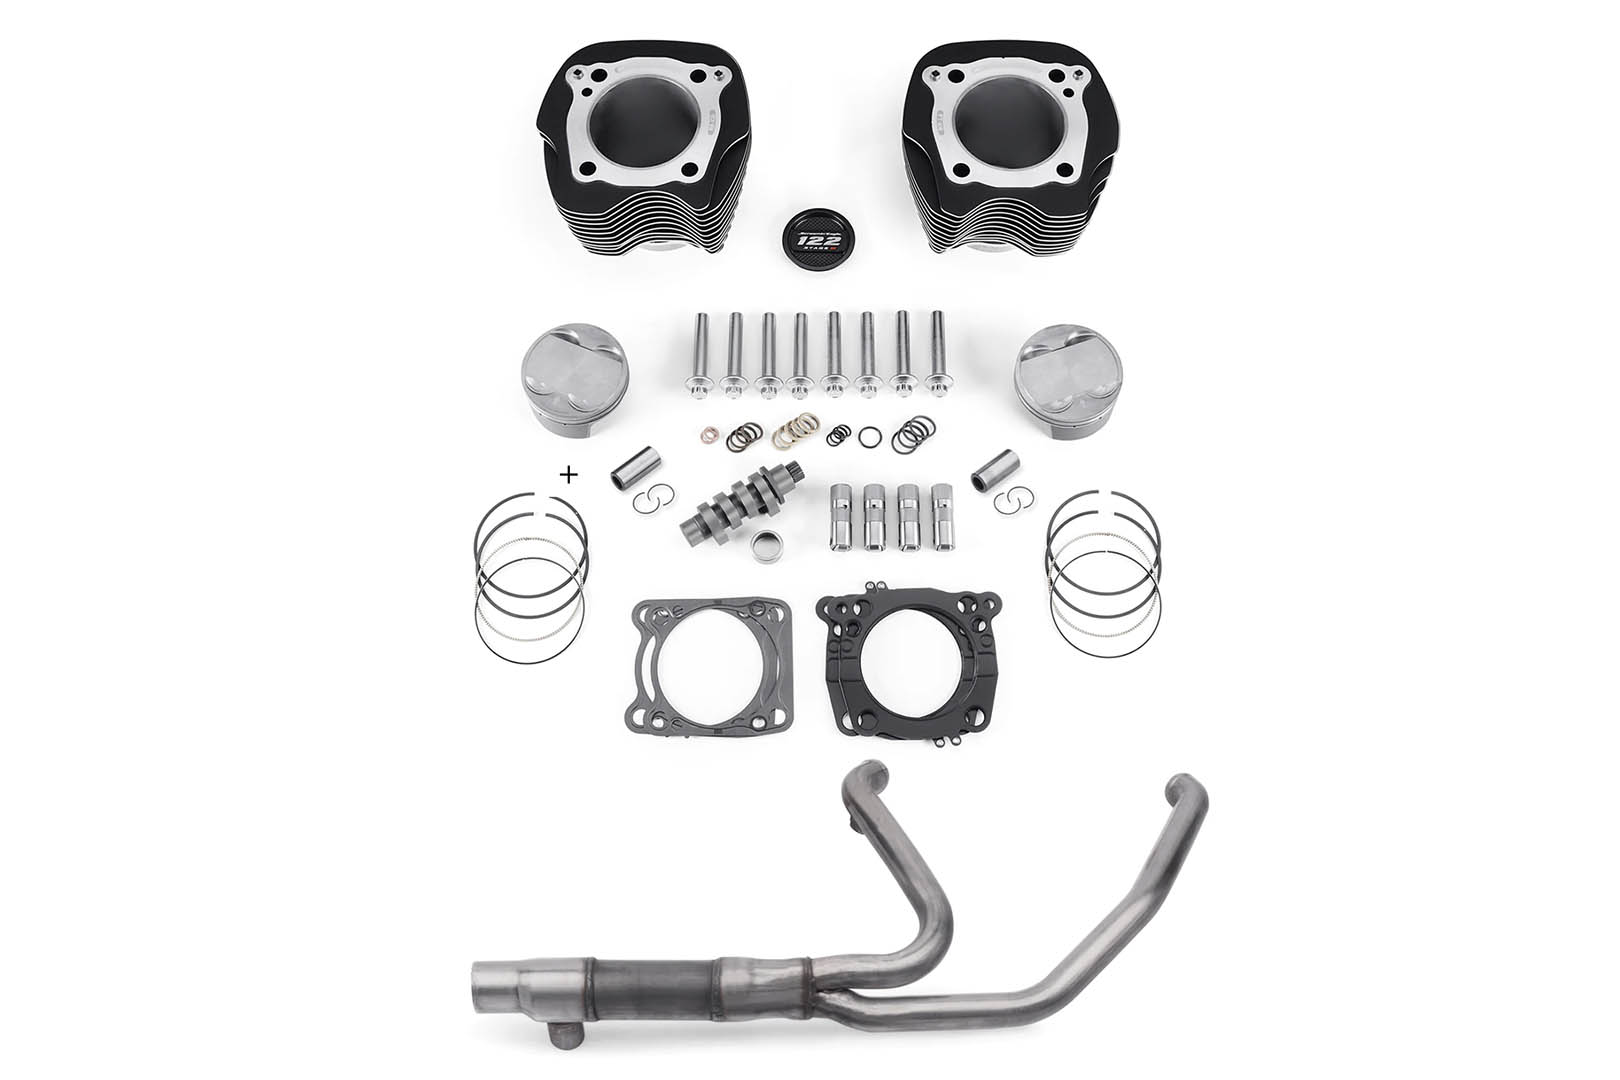 Screamin' Eagle 122ci Kit: Price and MSRP